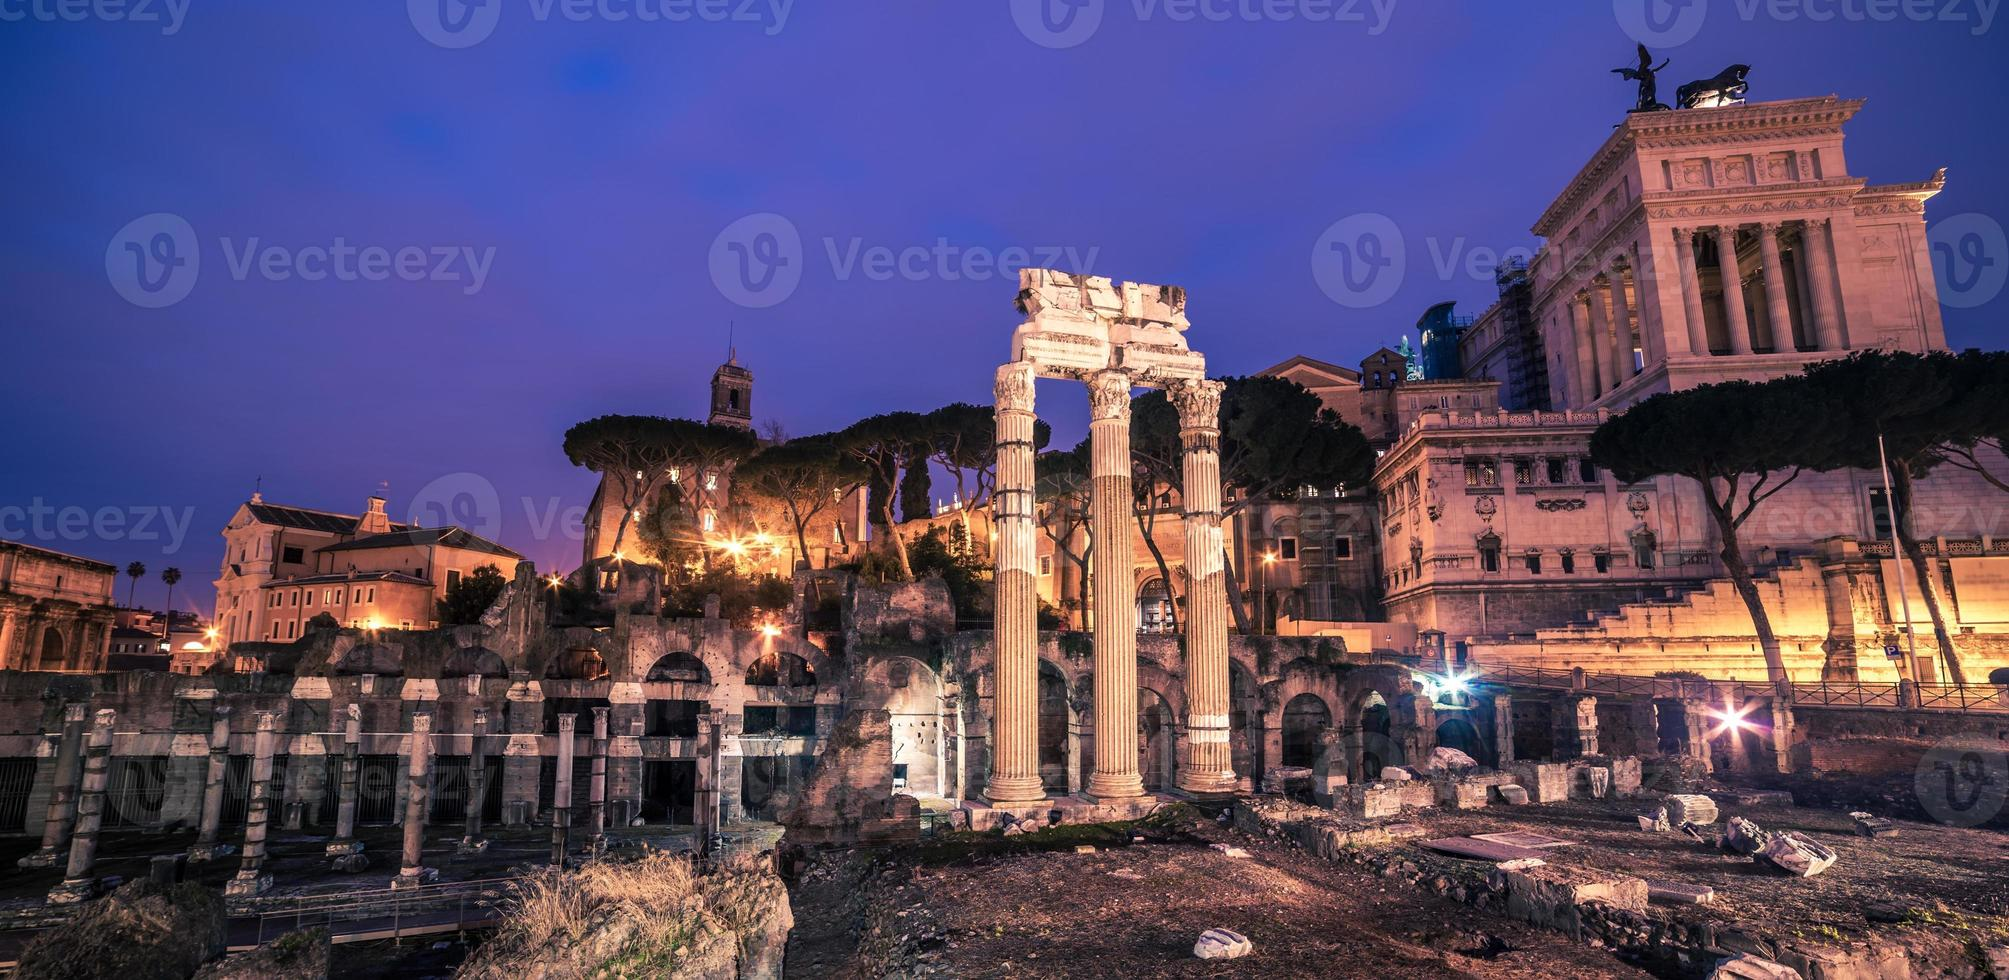 Rome, Italy: The Roman Forum and Old Town photo